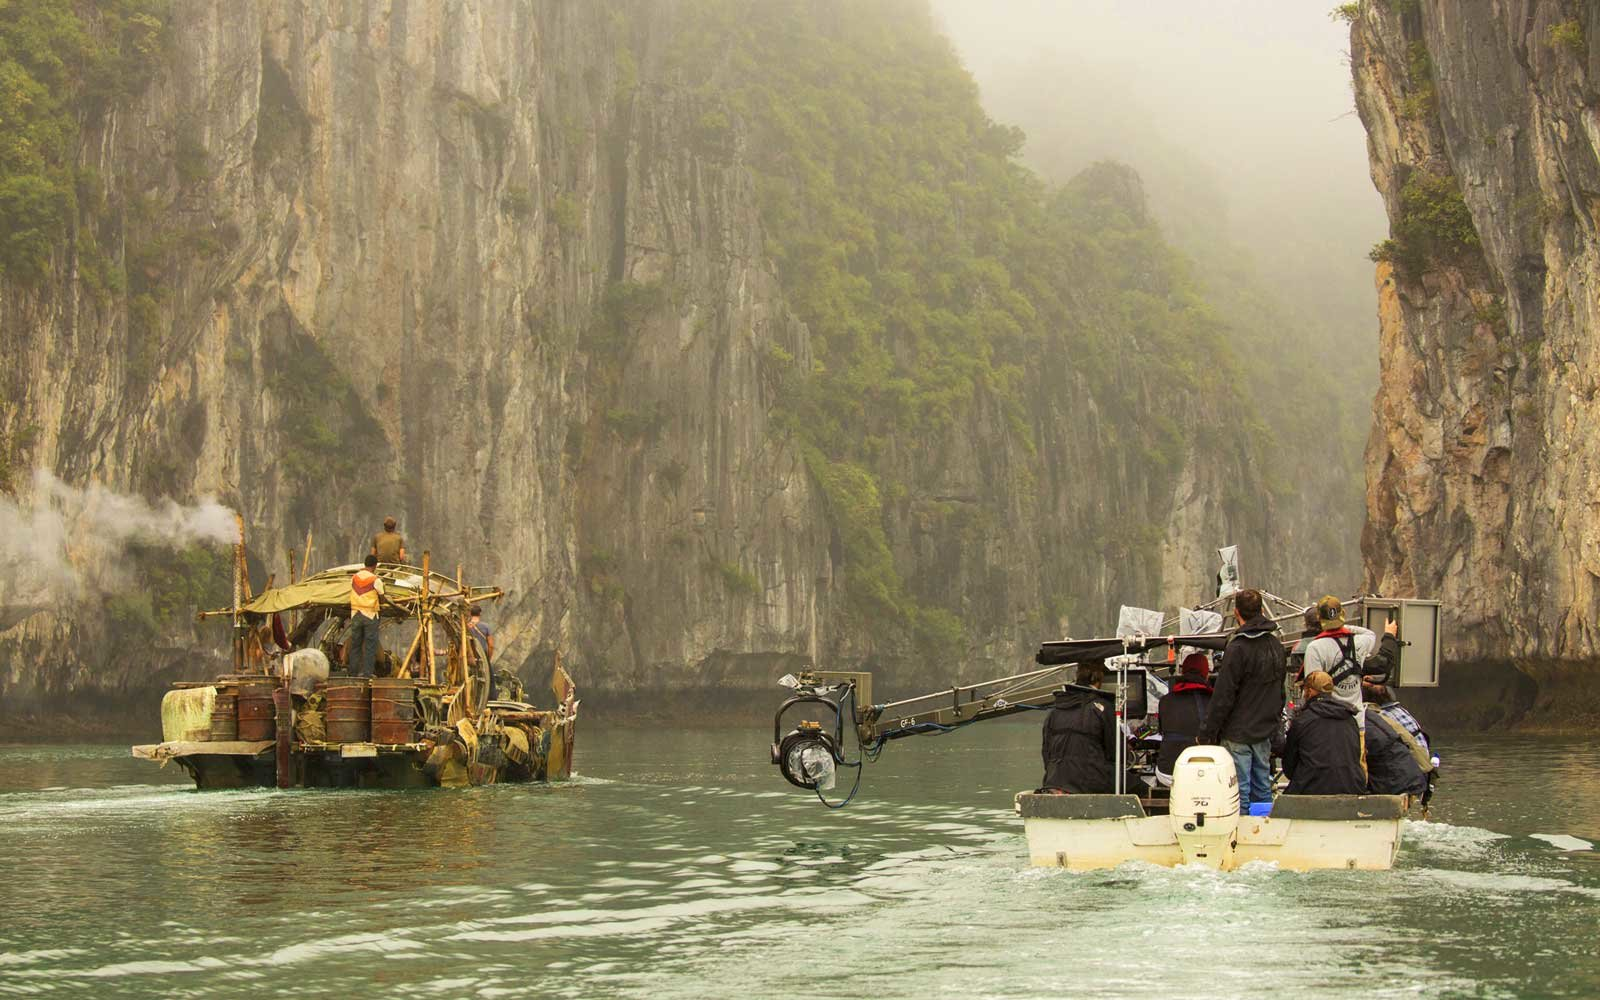 On location in Vietnam with Jordan Vogt-Roberts, director of Kong: Skull Island | Travel + Leisure